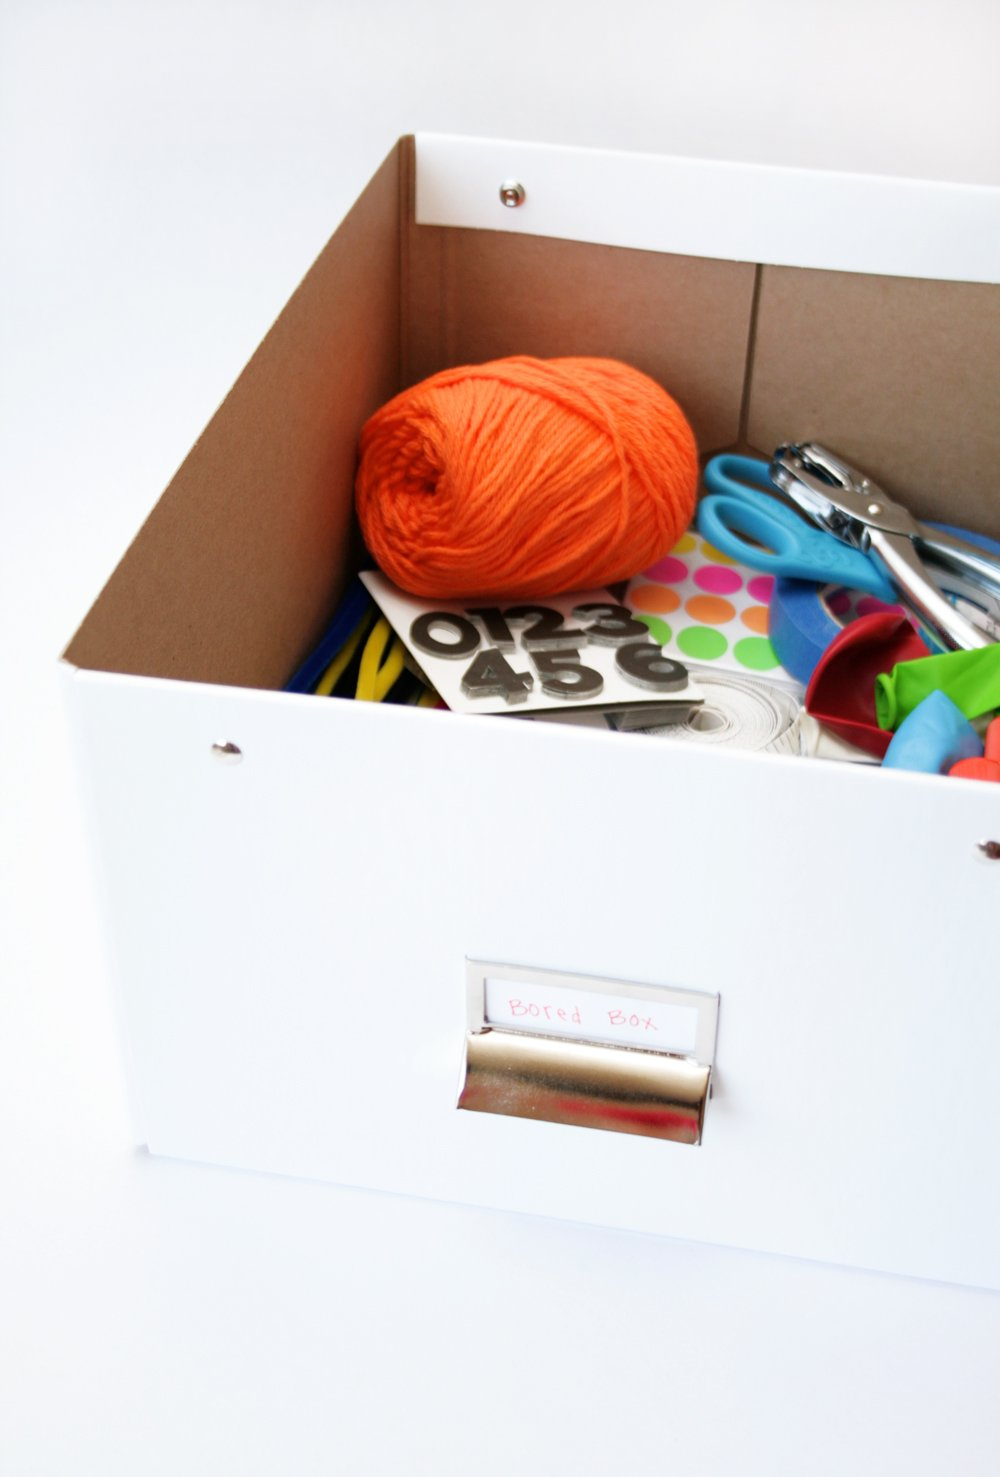 Make a Bored Box to Help Combat Summer Bordeom via @PagingSupermom